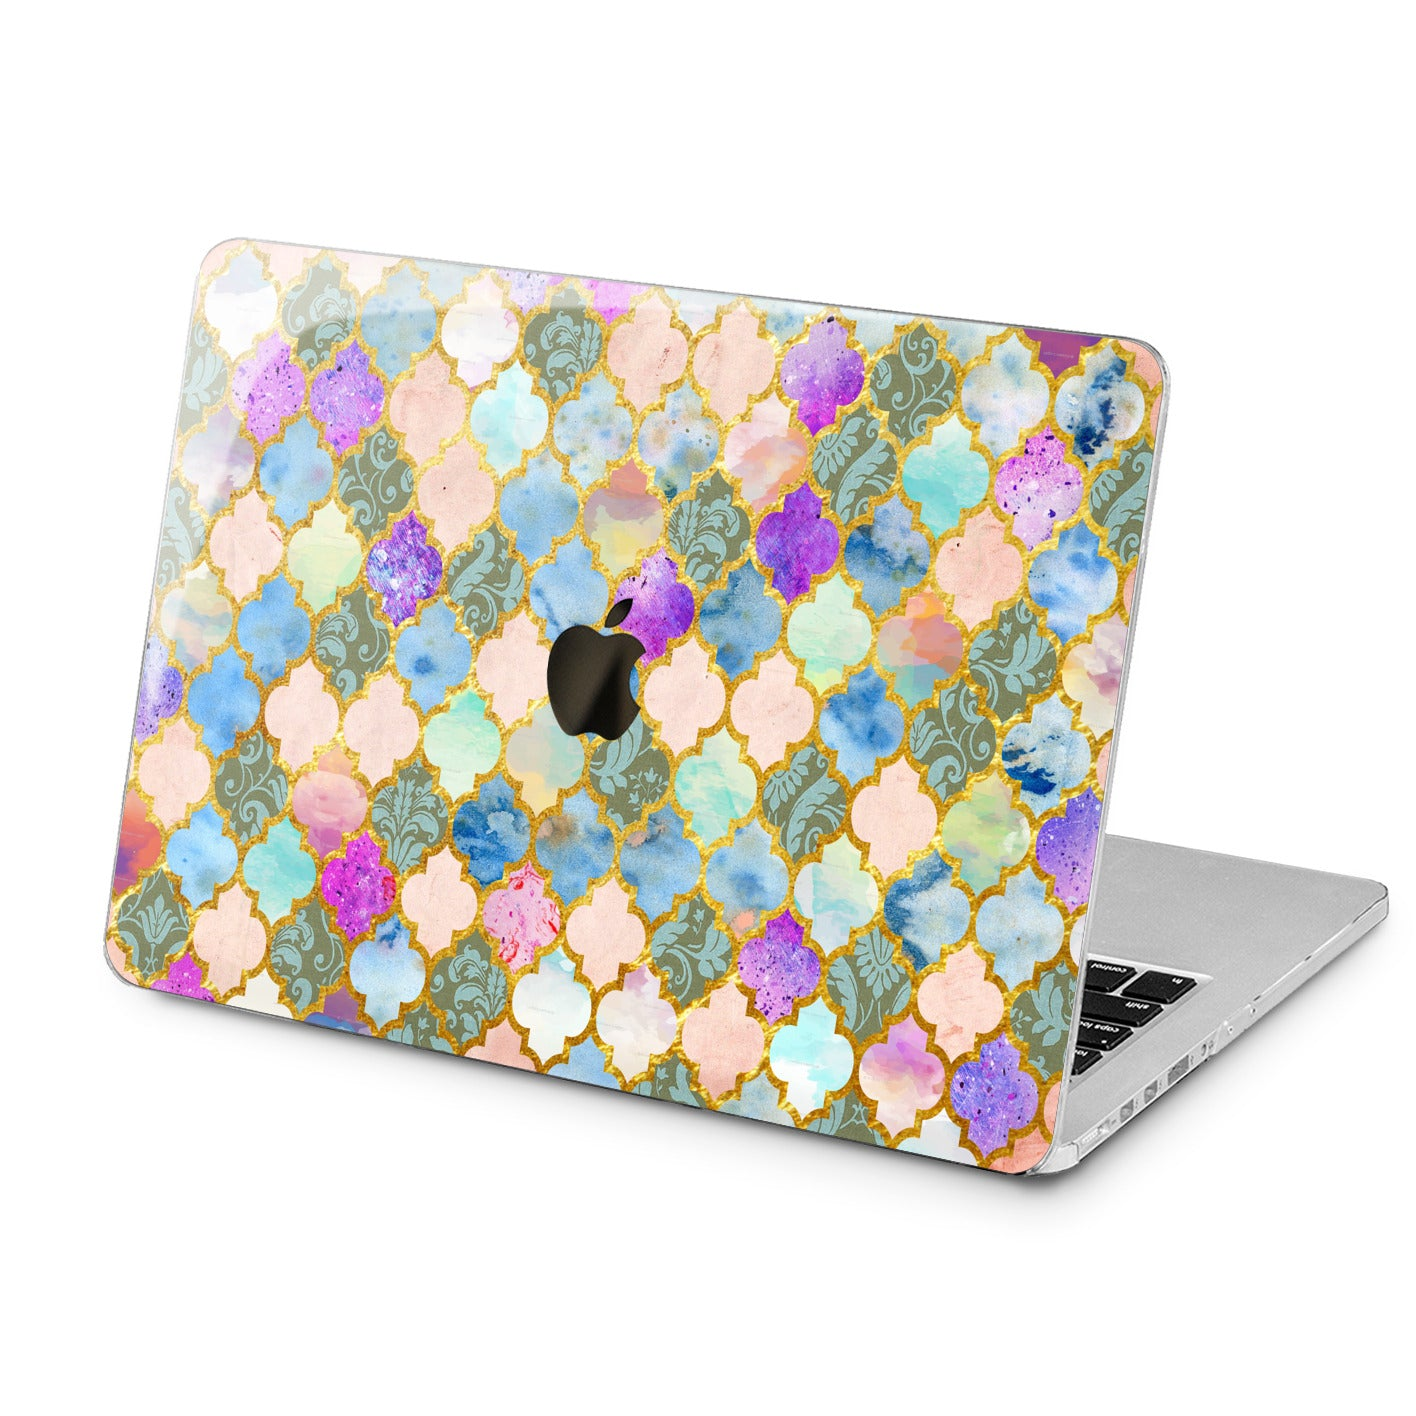 Lex Altern Lex Altern Bohemian Tile Case for your Laptop Apple Macbook.